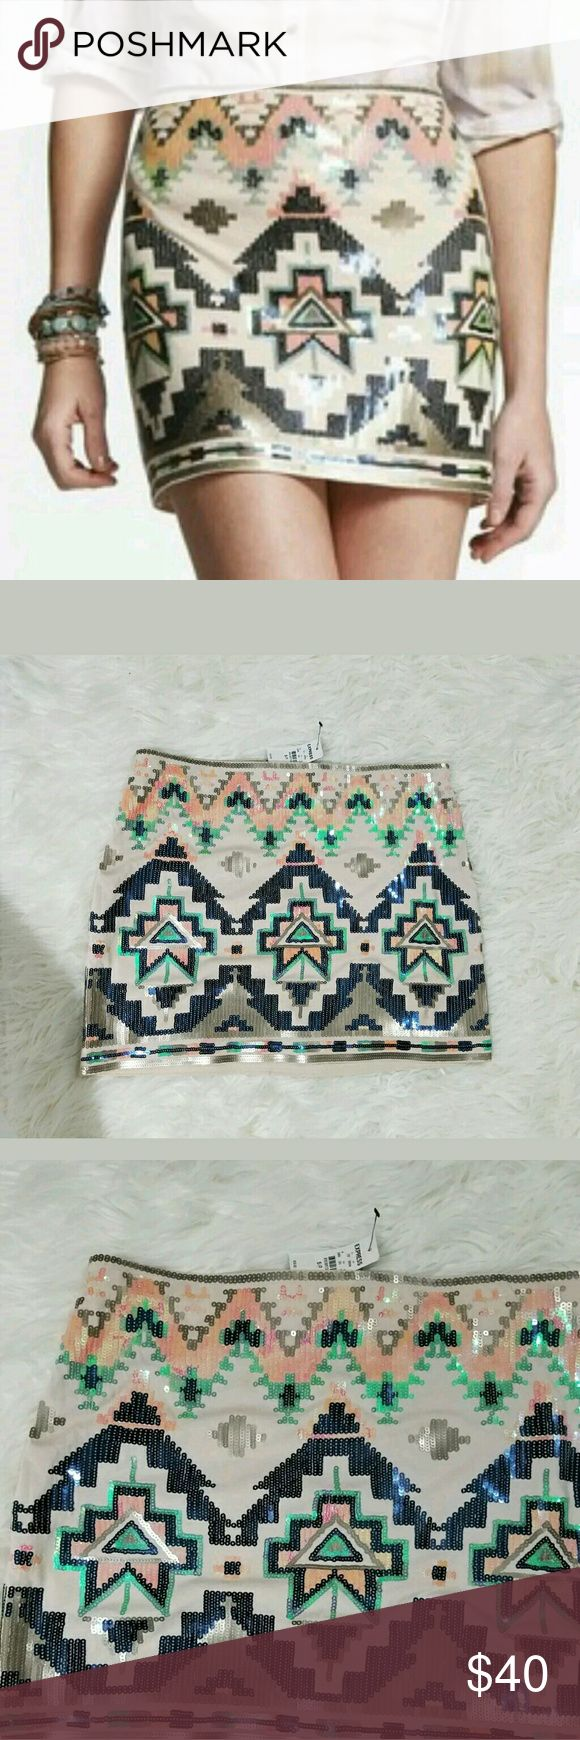 NWT Express Stretch Aztec Sequin Mini Skirt Cute skirt!   29 inch waist (plus stretch).  14.75 inches long.   LB Express Skirts Mini